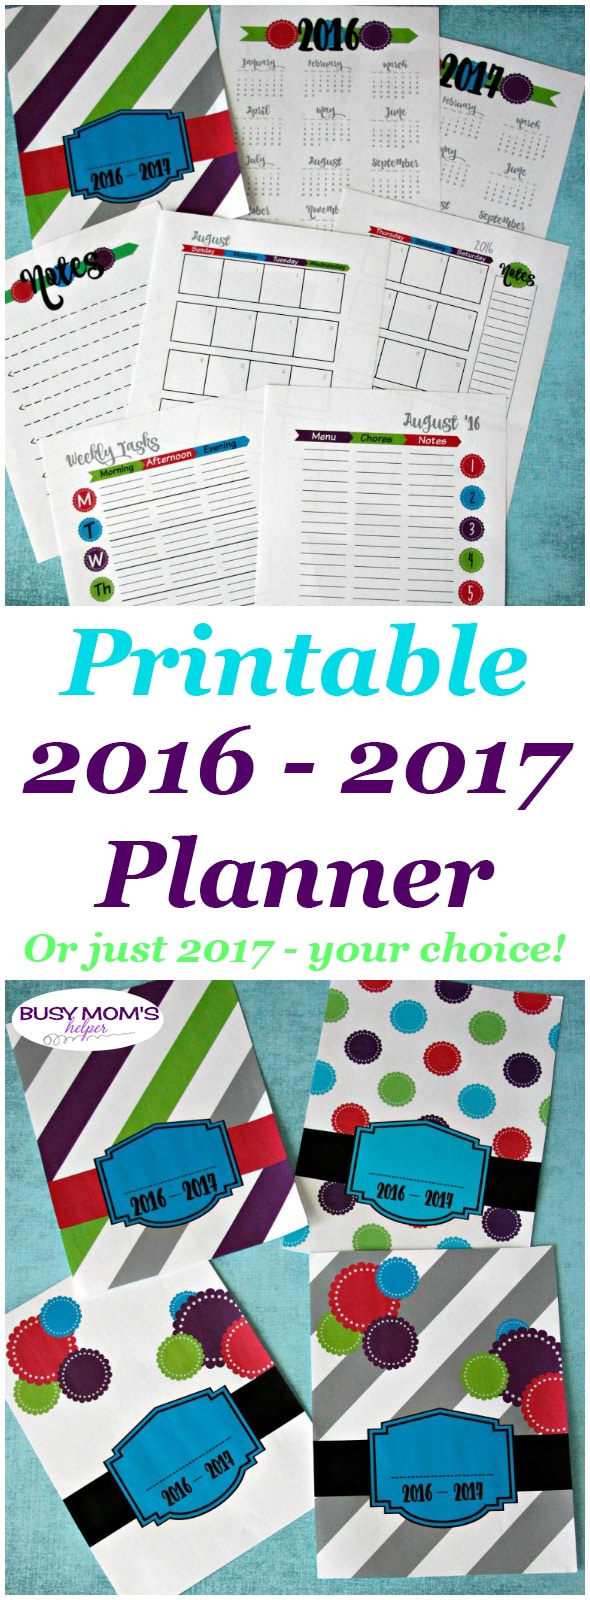 Printable 2016-2017 Planner in bright colors / Also available: Printable 2017 Planner in bright colors (ad)